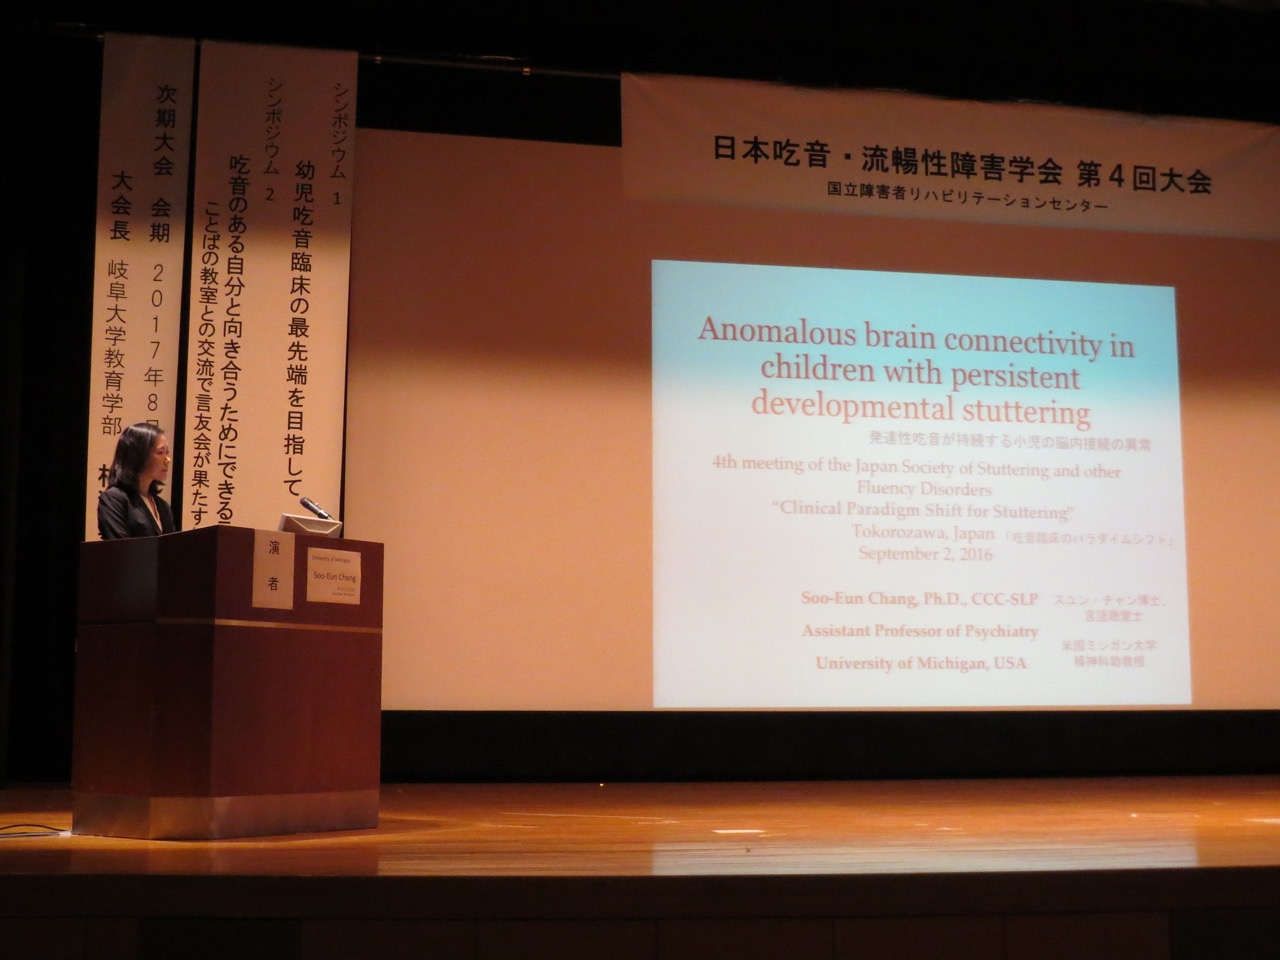 Dr. Chang presenting the lab's work at the 4th meeting of the Japan Society of stuttering and other fluency disorders, held in Tokorozawa, Japan. August 2016.